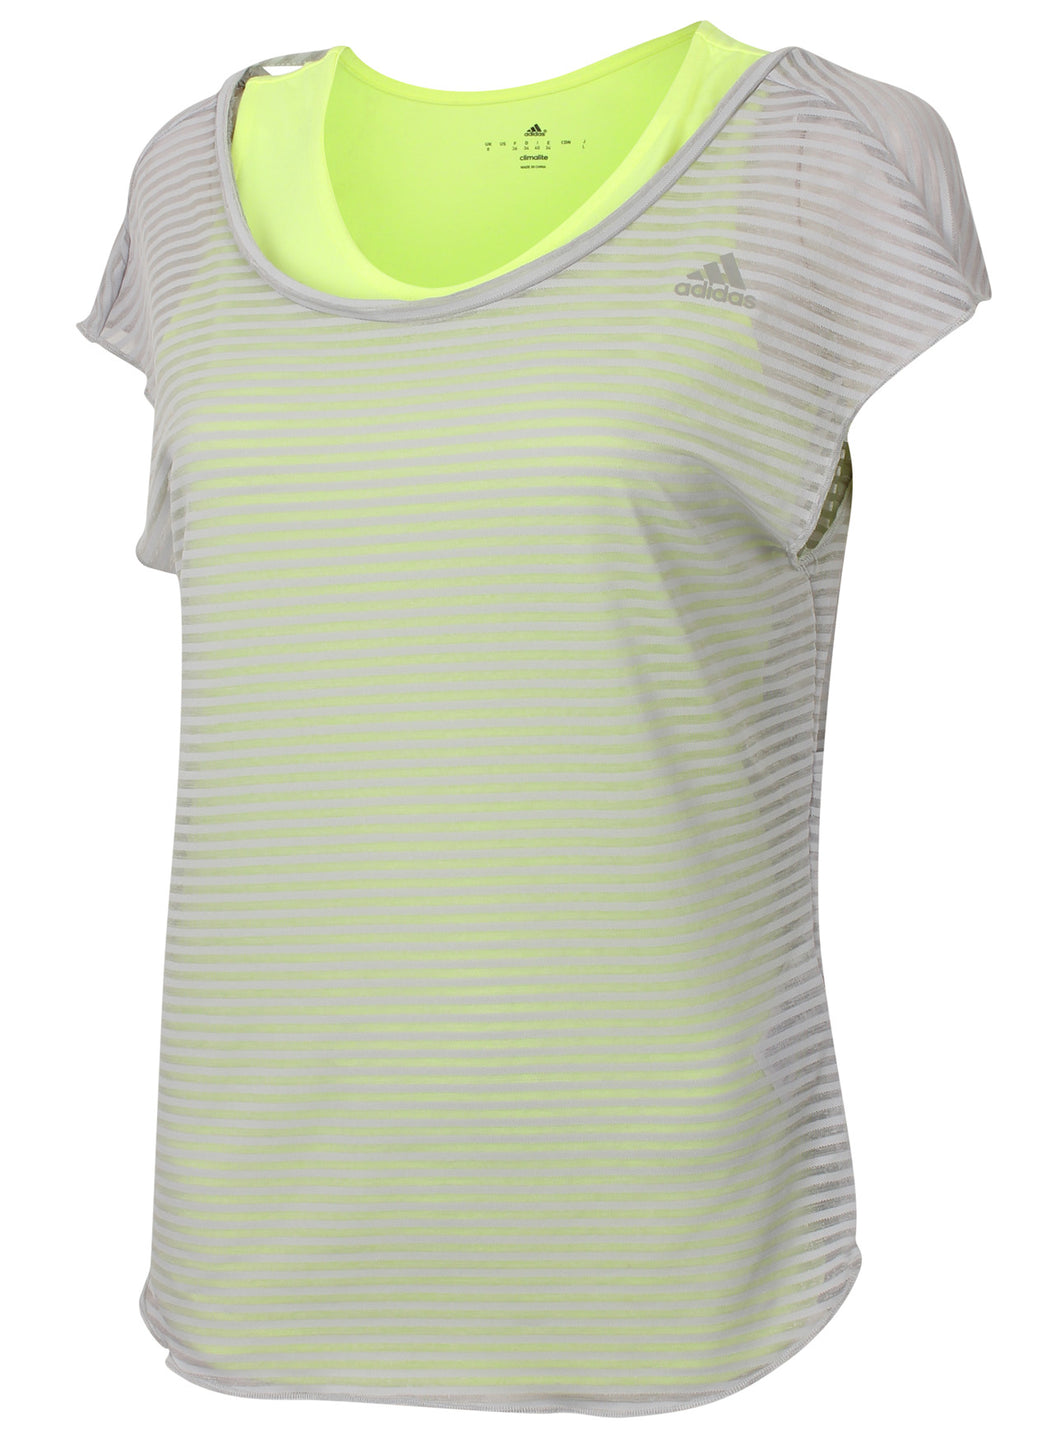 adidas Women's Double Layer climalite Vest and T-Shirt Yellow/Grey